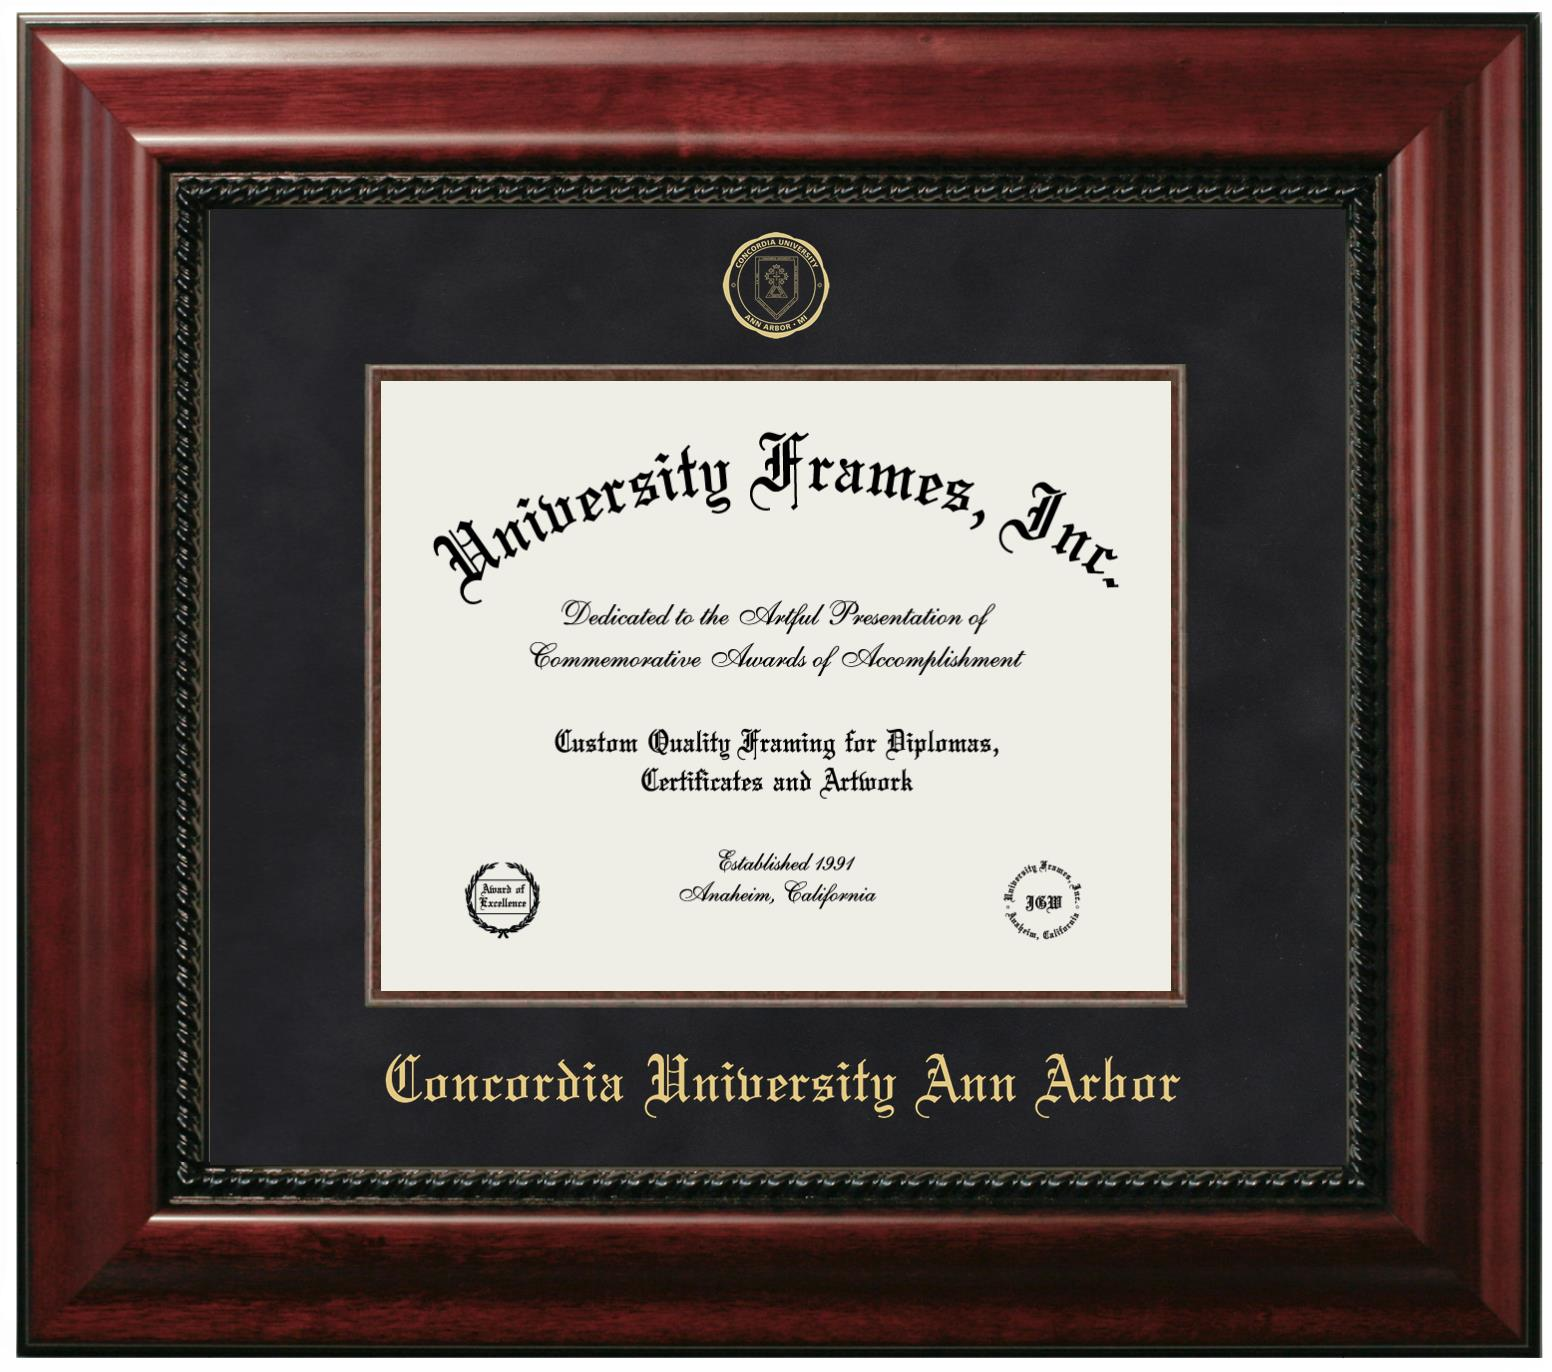 Concordia University Ann Arbor Diploma Frame In Executive With Gold Fillet With Black Suede Mat